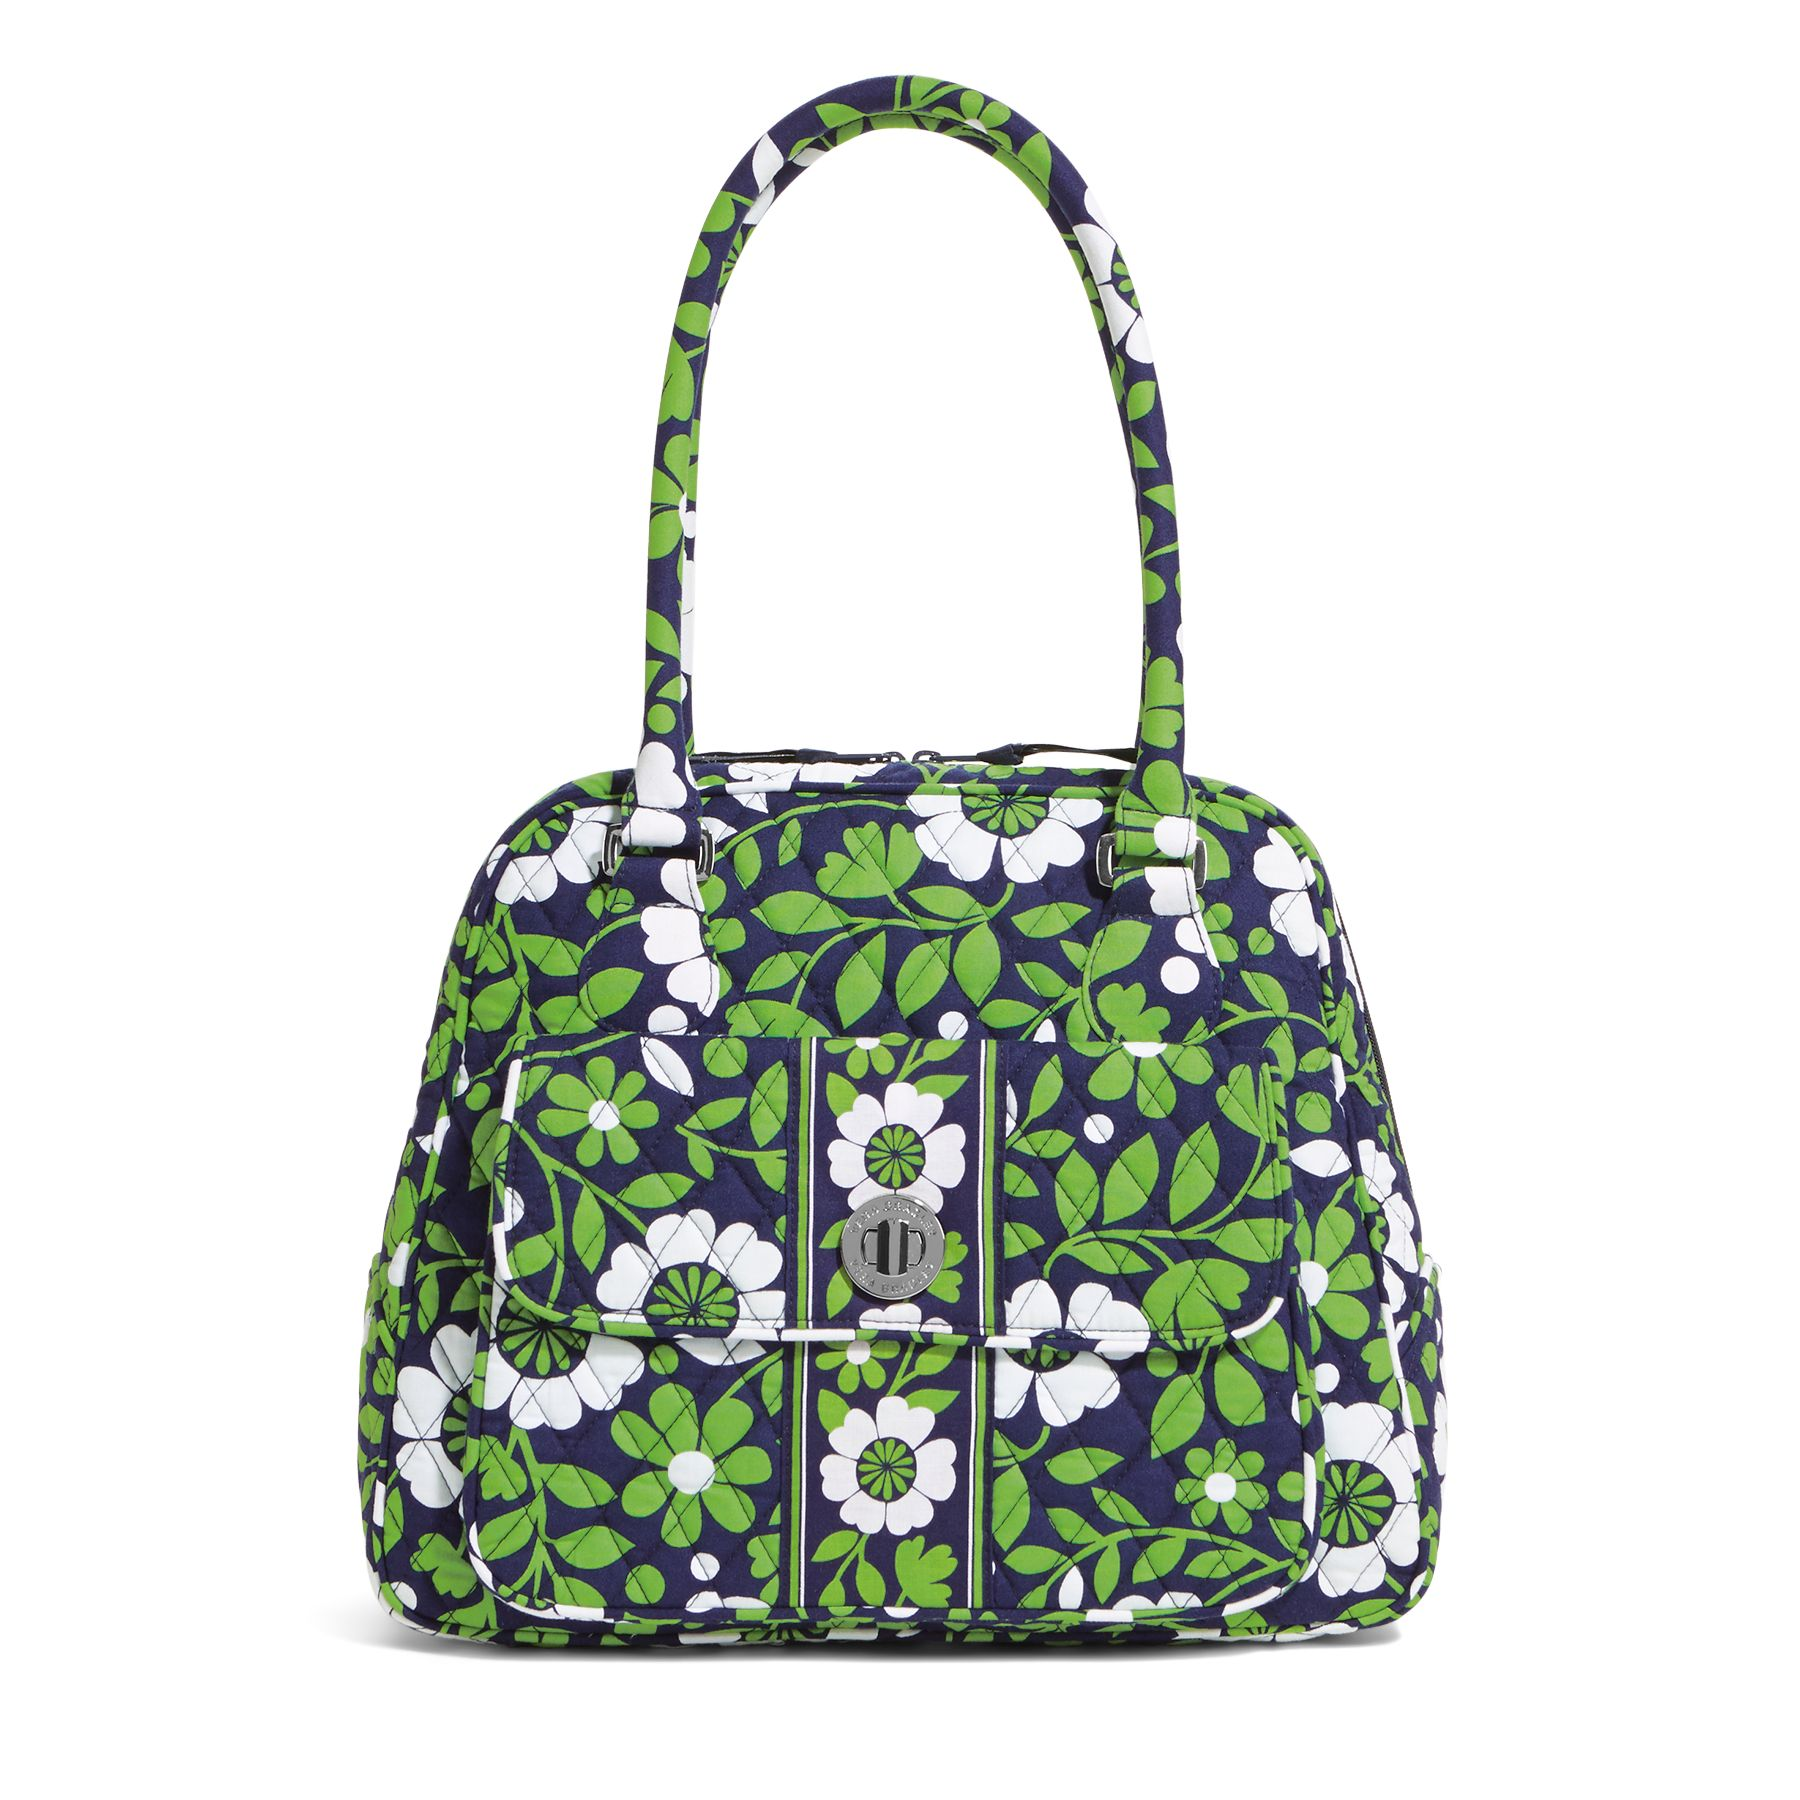 Vera Bradley Turn Lock Satchel in Lucky You